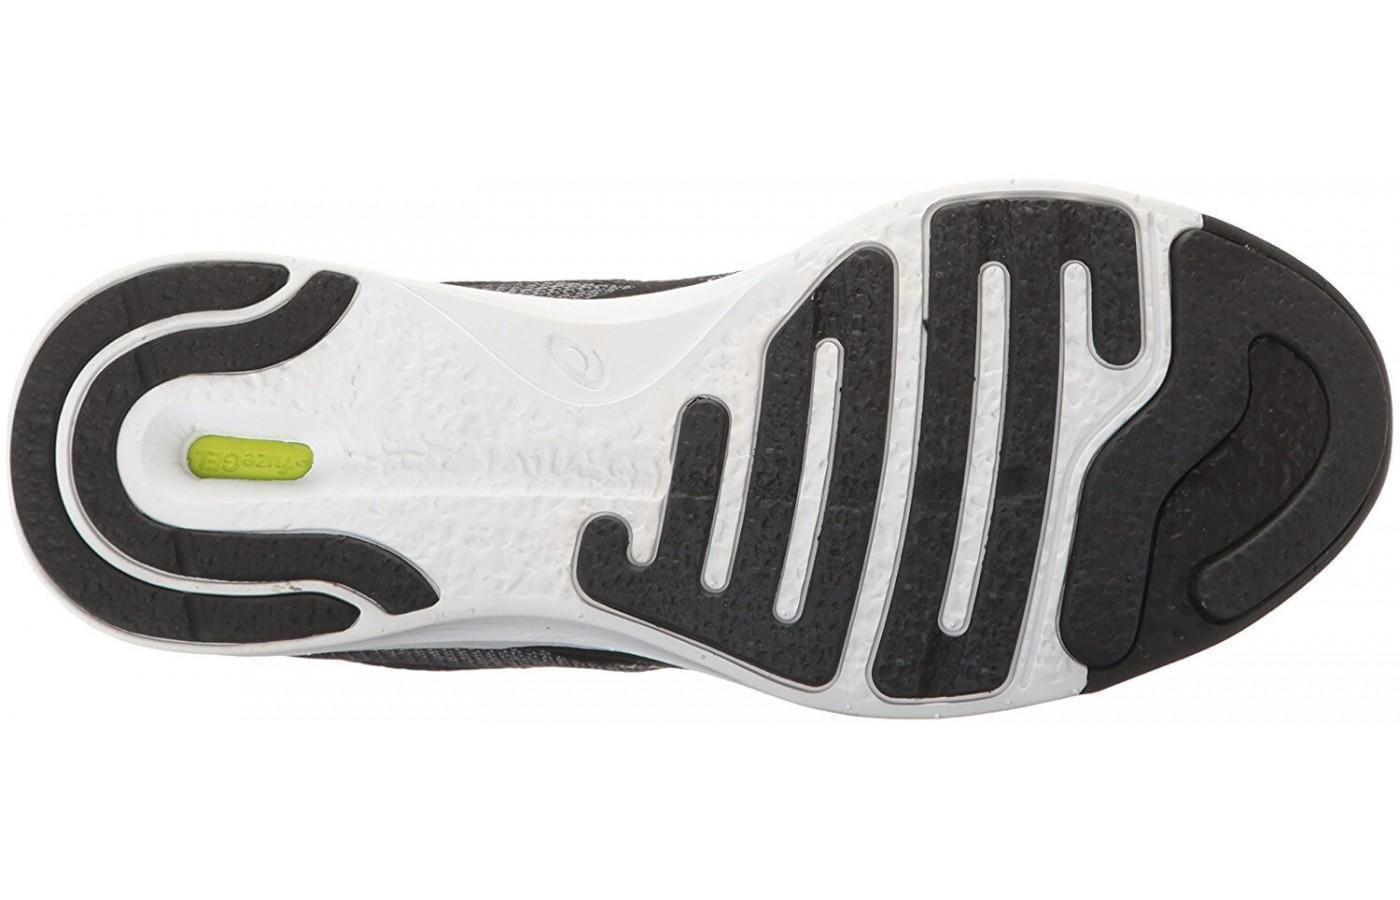 The outsole of the Fuze X Rush offers great traction.